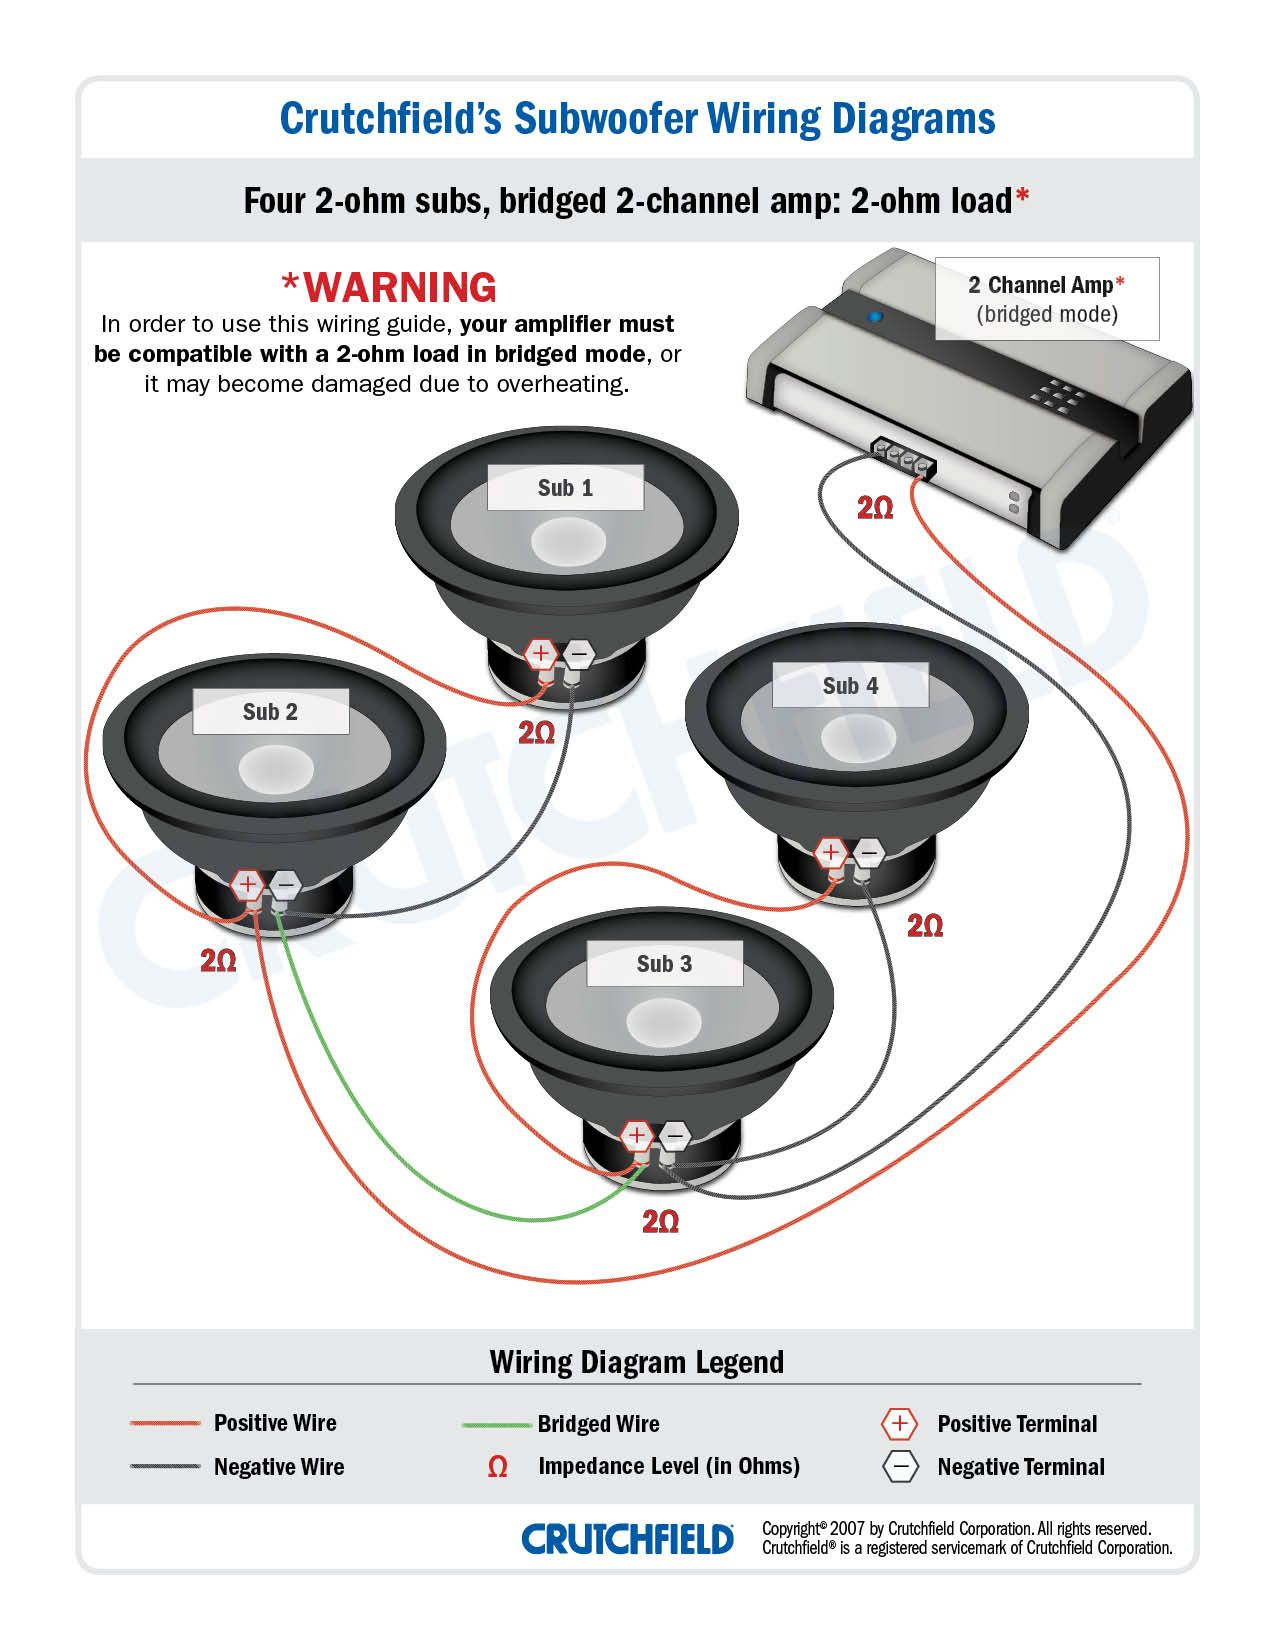 Car Audio Subwoofer Wiring | Wiring Diagram on usb wiring, amplifier wiring, speaker wiring, sub wiring, air conditioning wiring, woofer wiring, bass wiring, soundbar wiring, sound wiring, surround wiring, keyboard wiring, cruise control wiring, av receiver wiring, audio wiring, amp wiring, power wiring, automatic headlights wiring, crossover wiring,